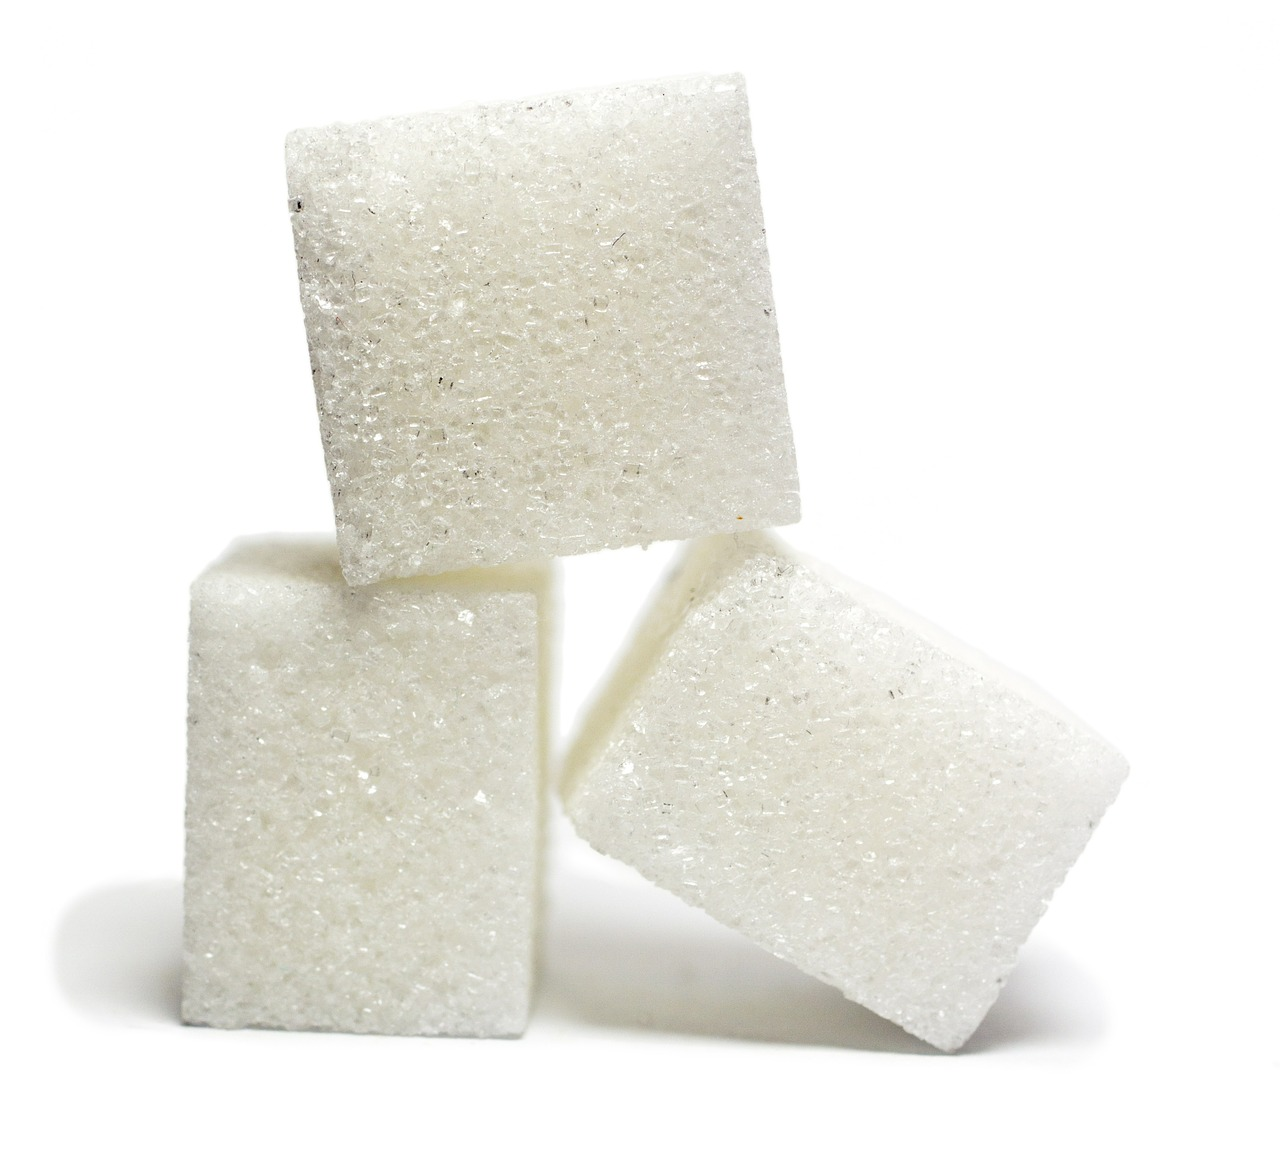 Sugar: the Worst Thing Since Tobacco Says New Study